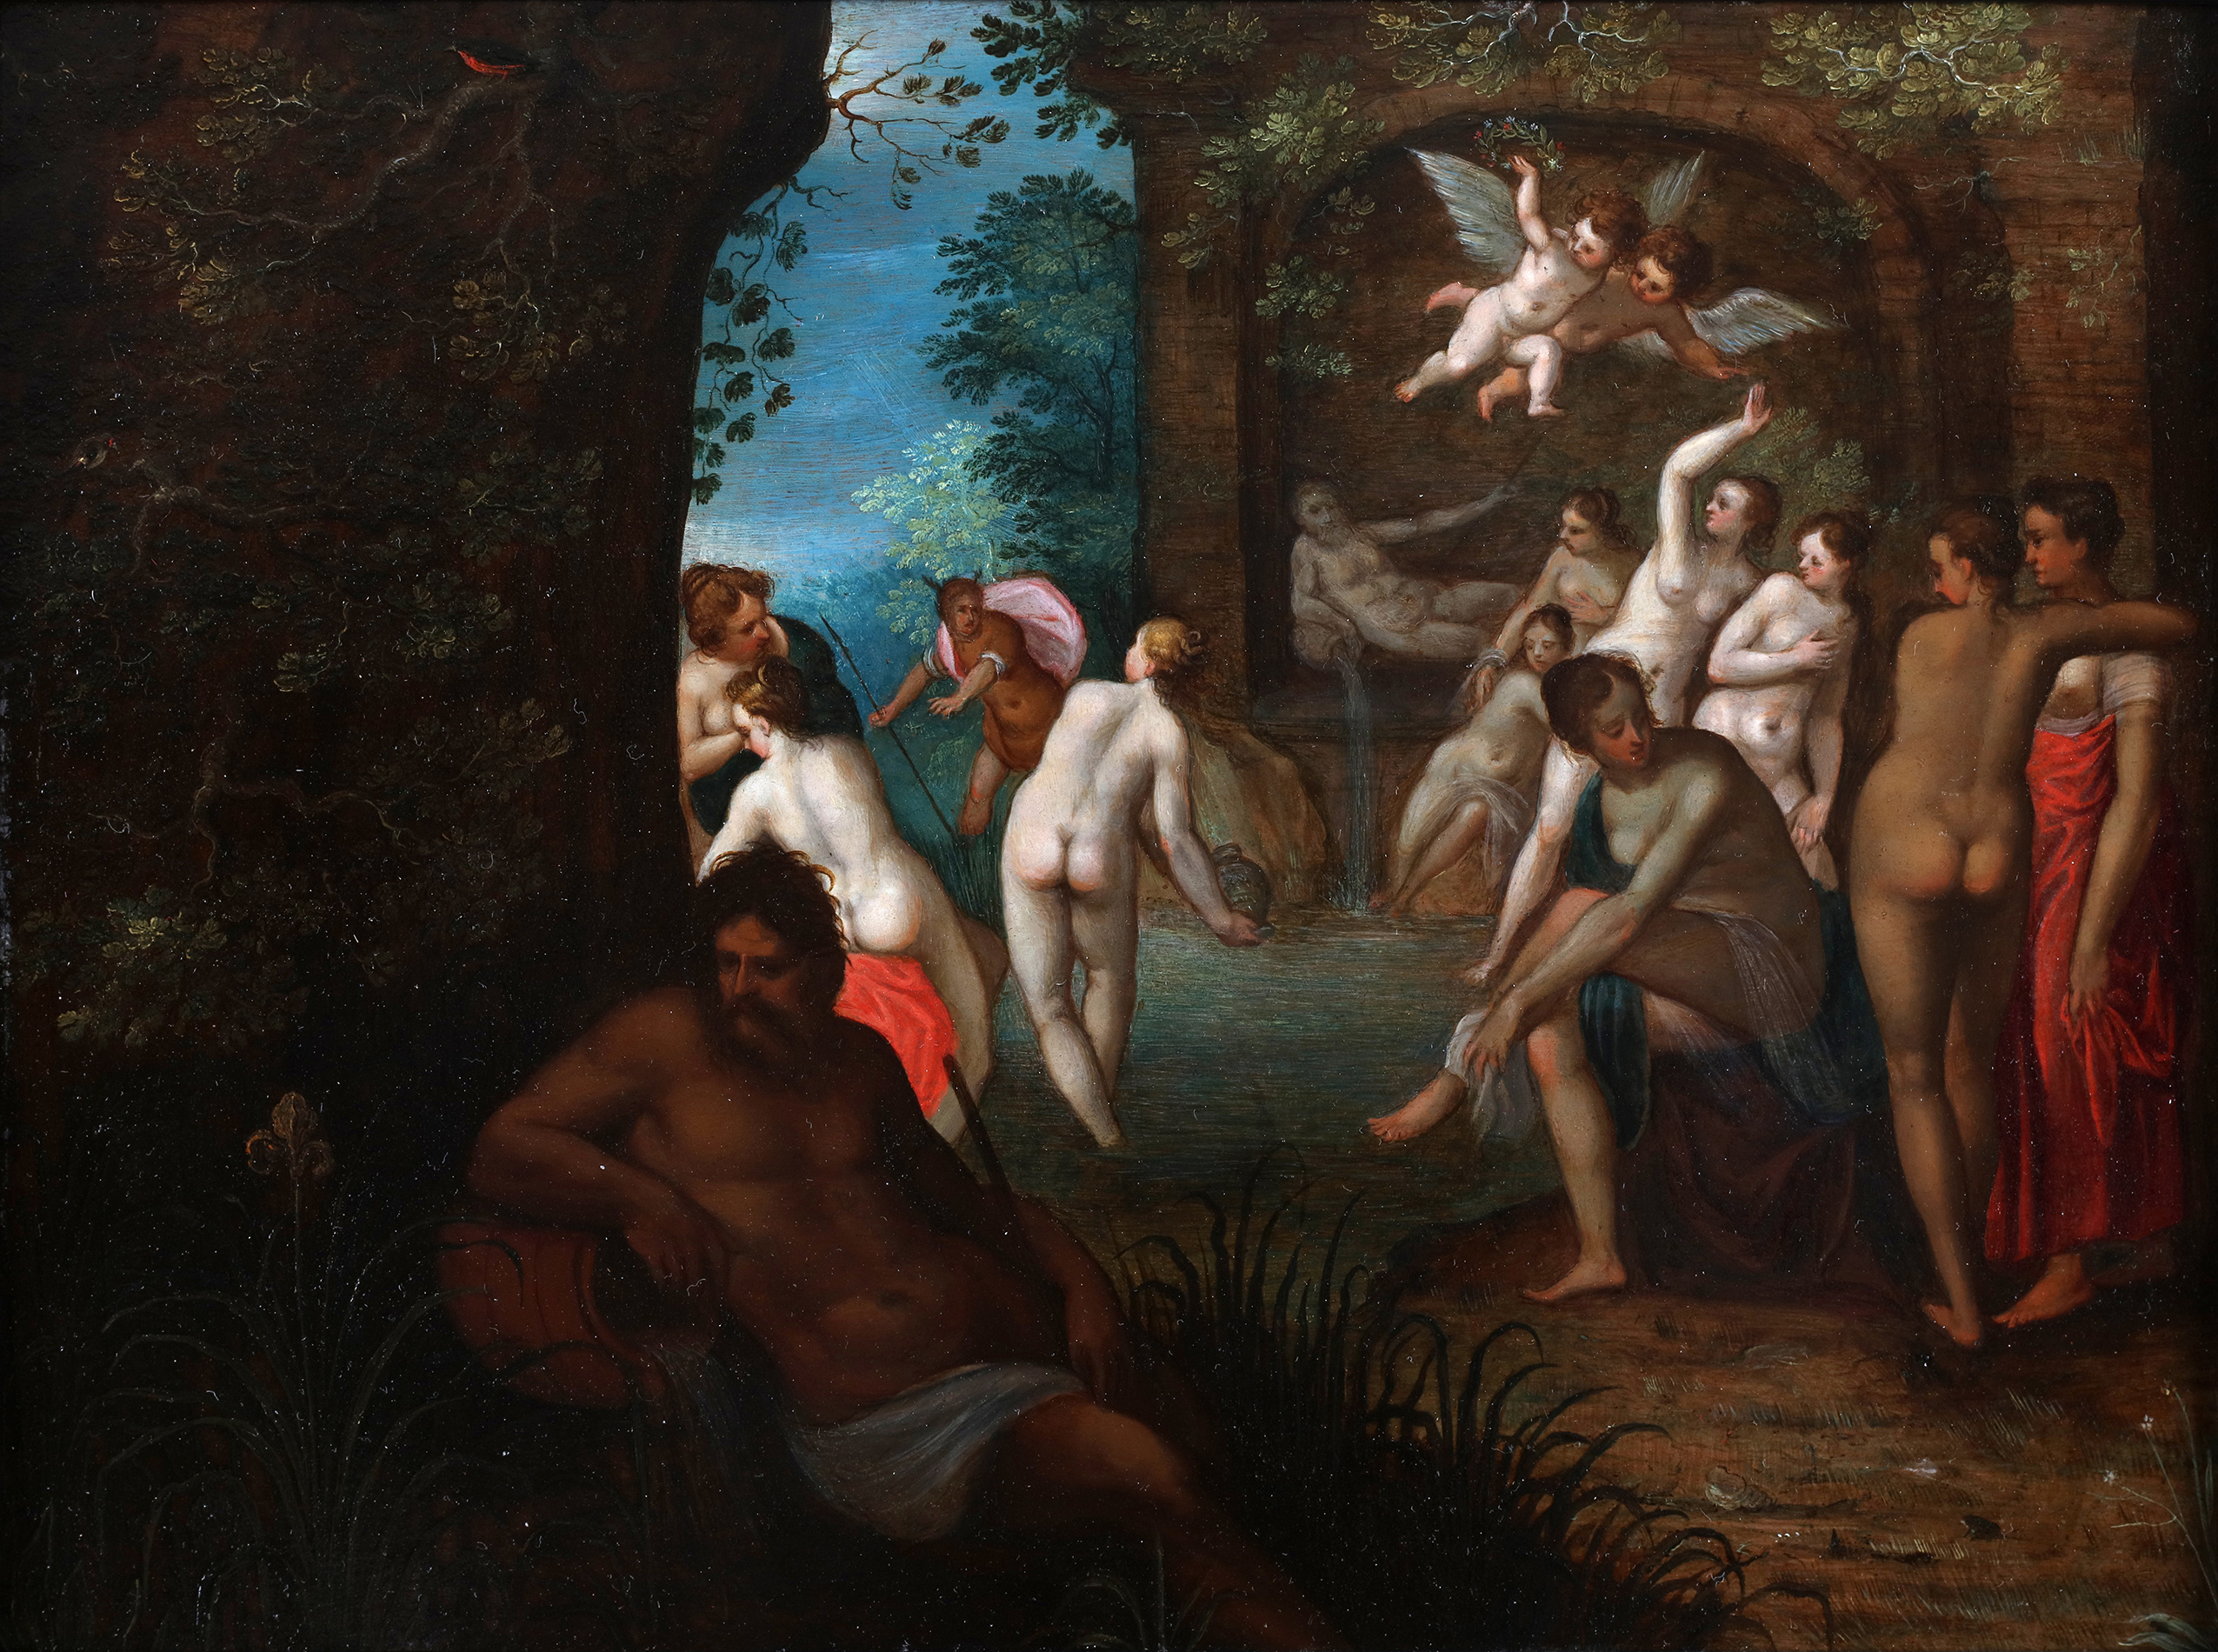 Diana and her companions bathing